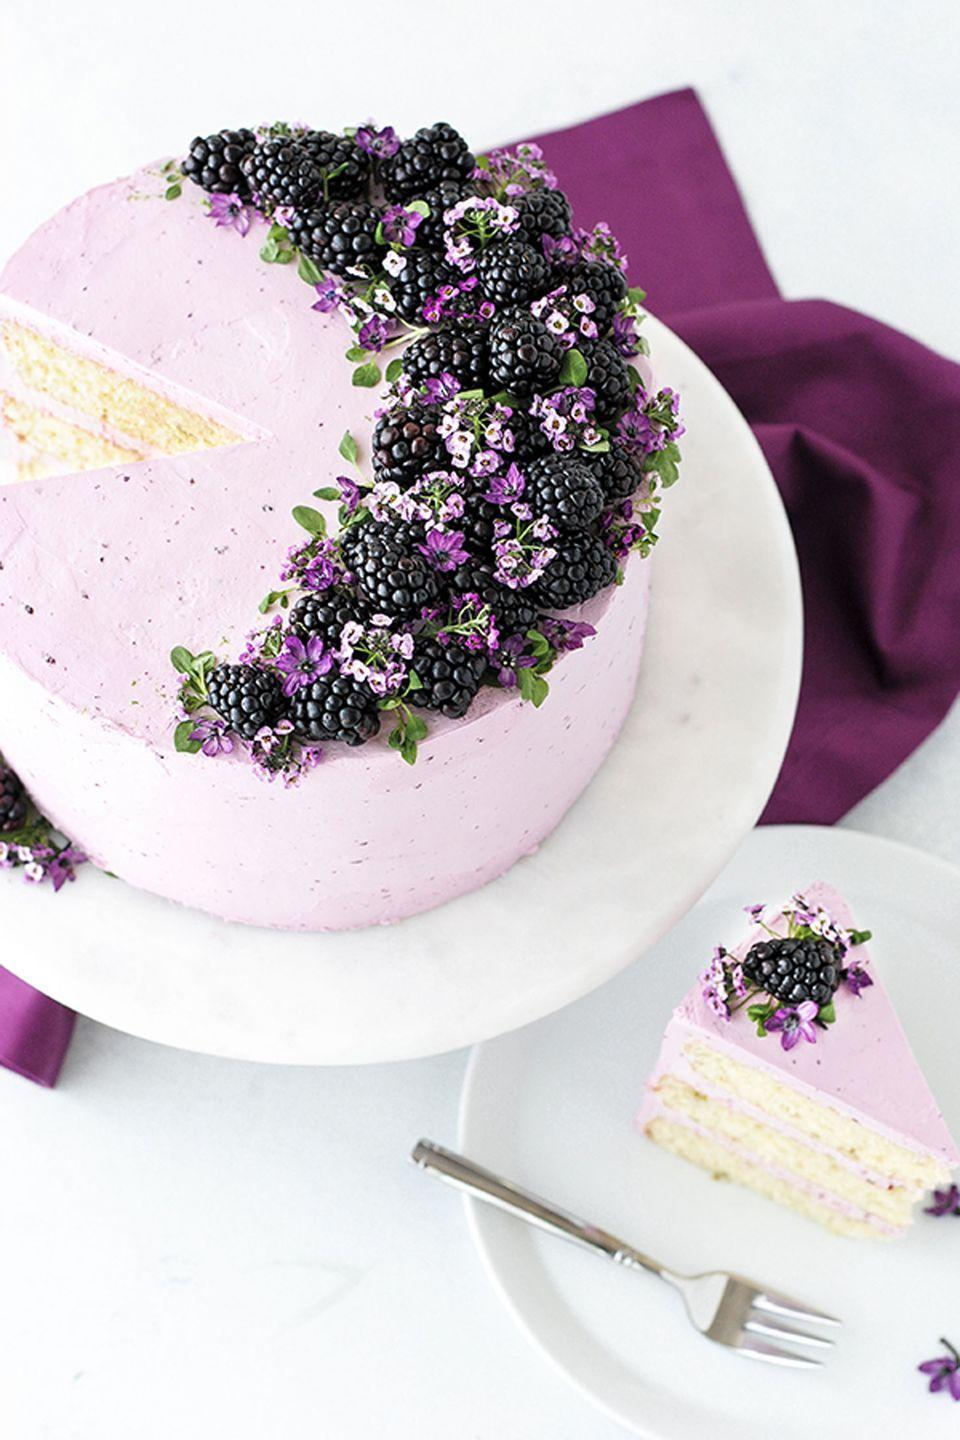 """<p>Warning: Mom might subject you to a photoshoot before she bites into this beauty (we promise, it's worth it!). The cake is vanilla while the icing is made of a blackberry reduction. </p><p><em><a href=""""http://thecakeblog.com/2017/03/blackberry-lime-cake.html"""" rel=""""nofollow noopener"""" target=""""_blank"""" data-ylk=""""slk:Get the recipe from The Cake Blog »"""" class=""""link rapid-noclick-resp"""">Get the recipe from The Cake Blog »</a></em></p>"""